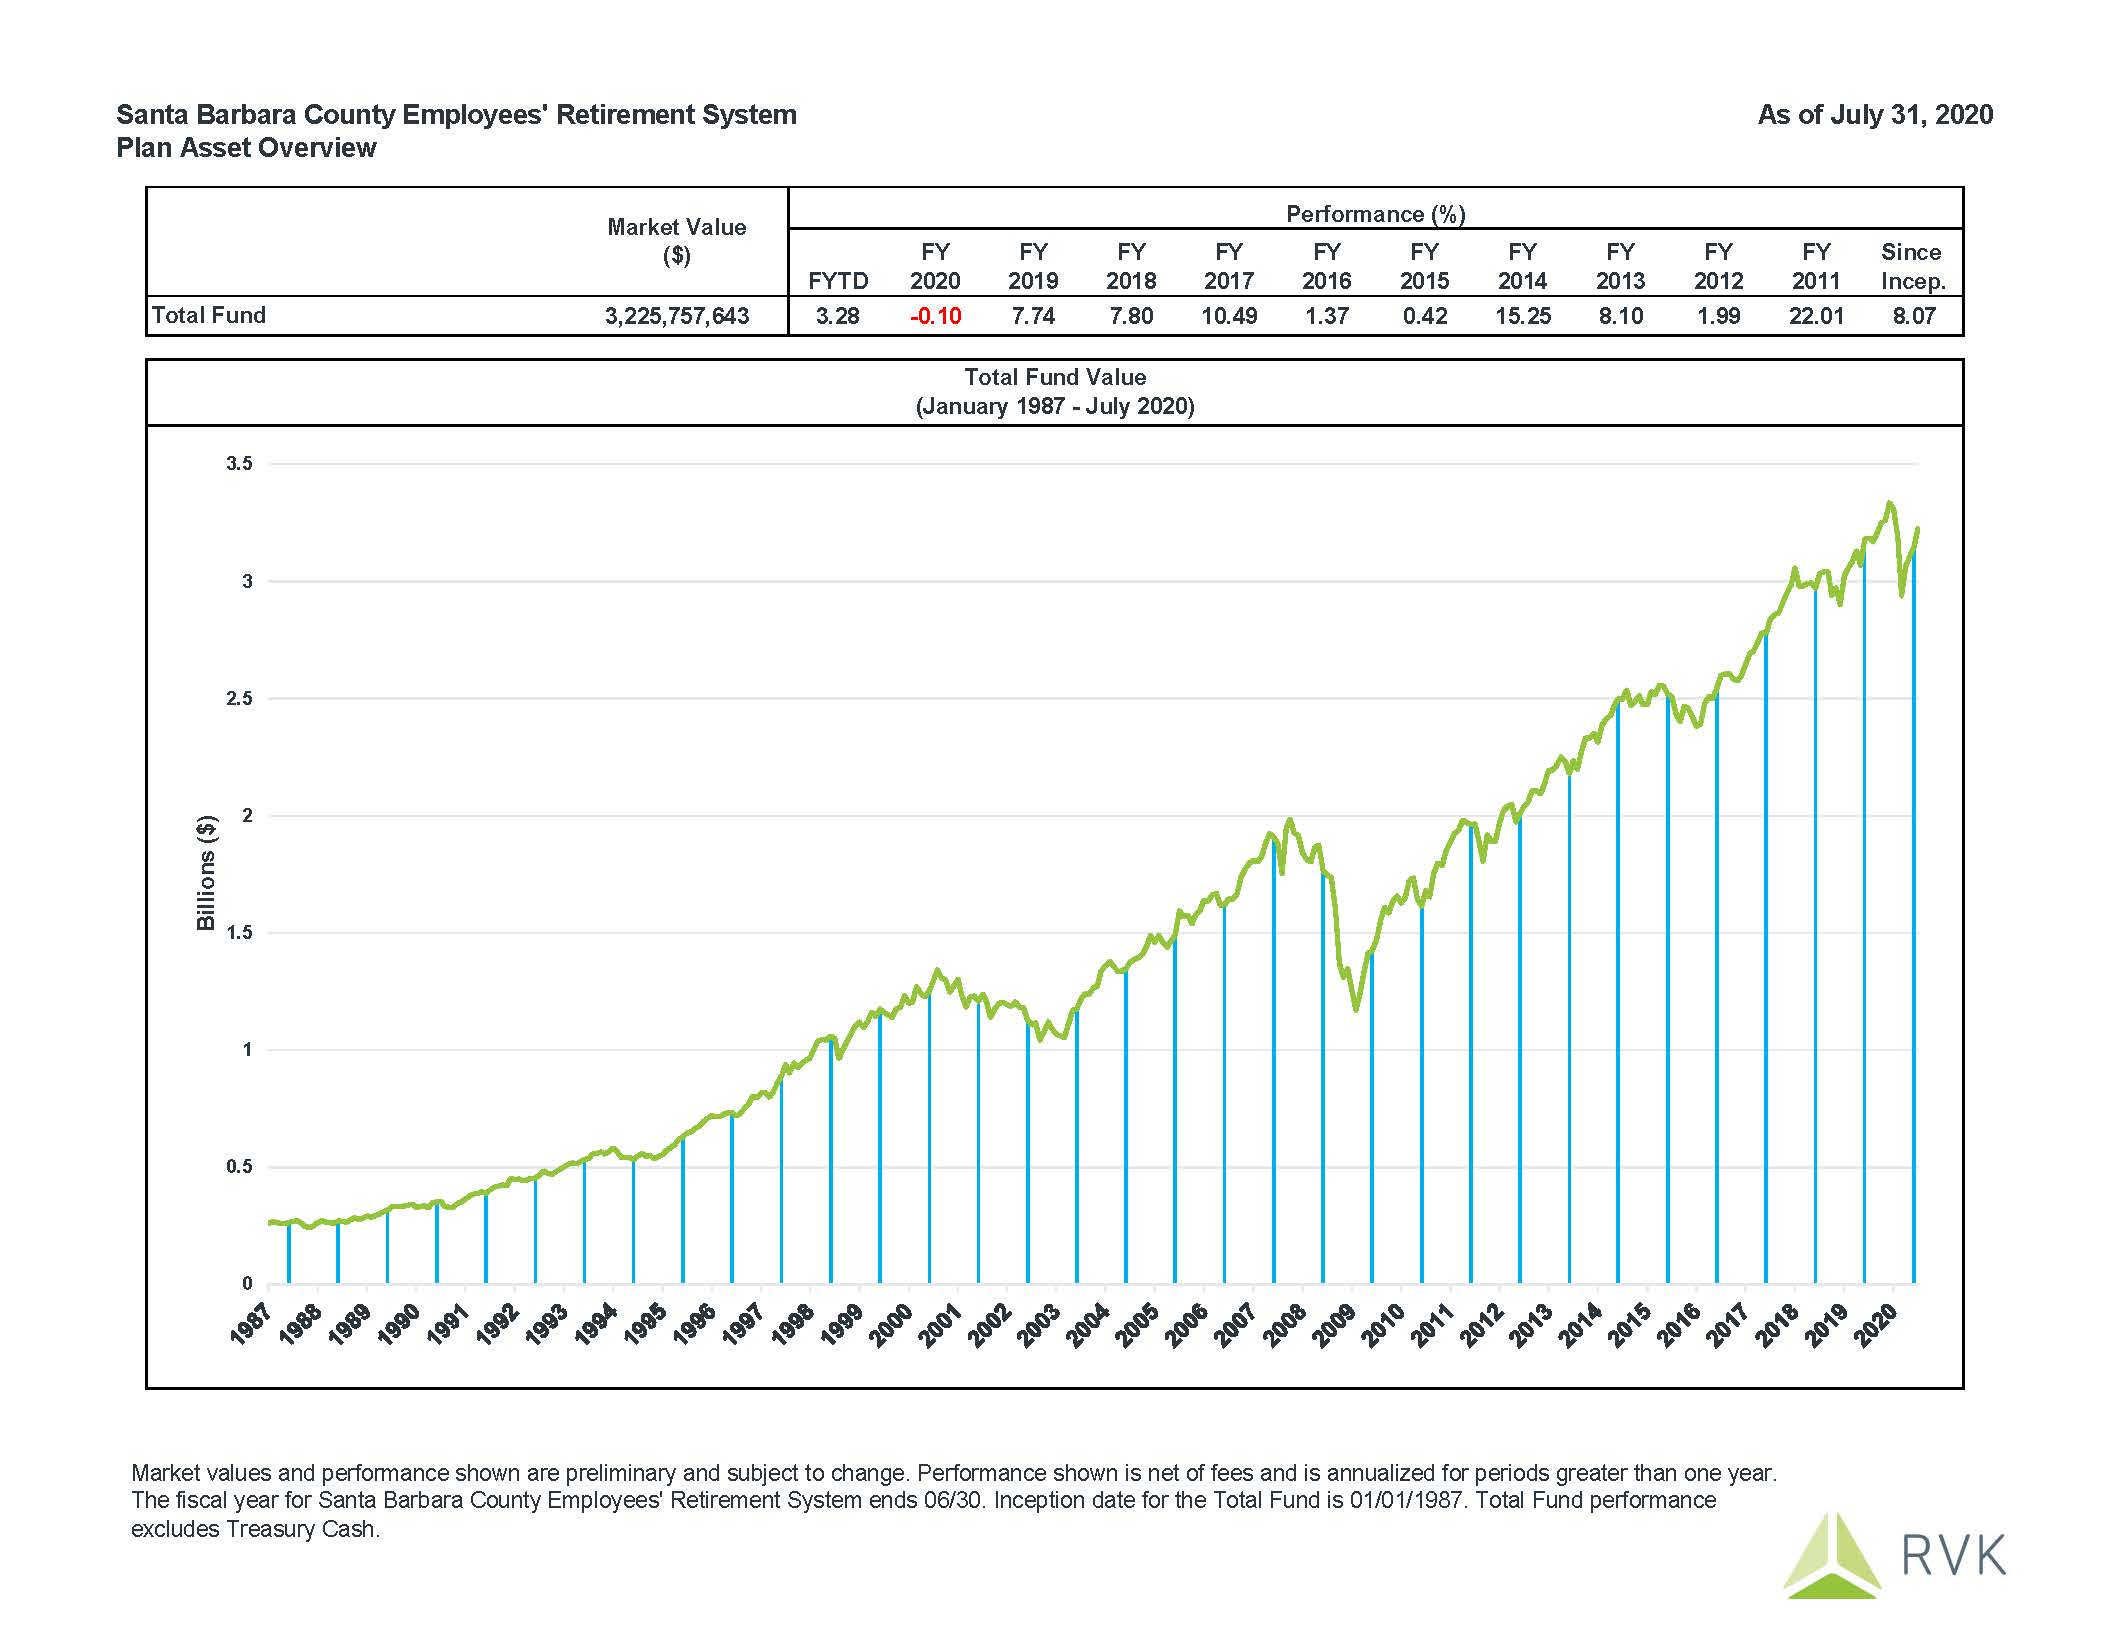 July 2020 Fund Performance: Fiscal Year to Date performance is 3.28%.